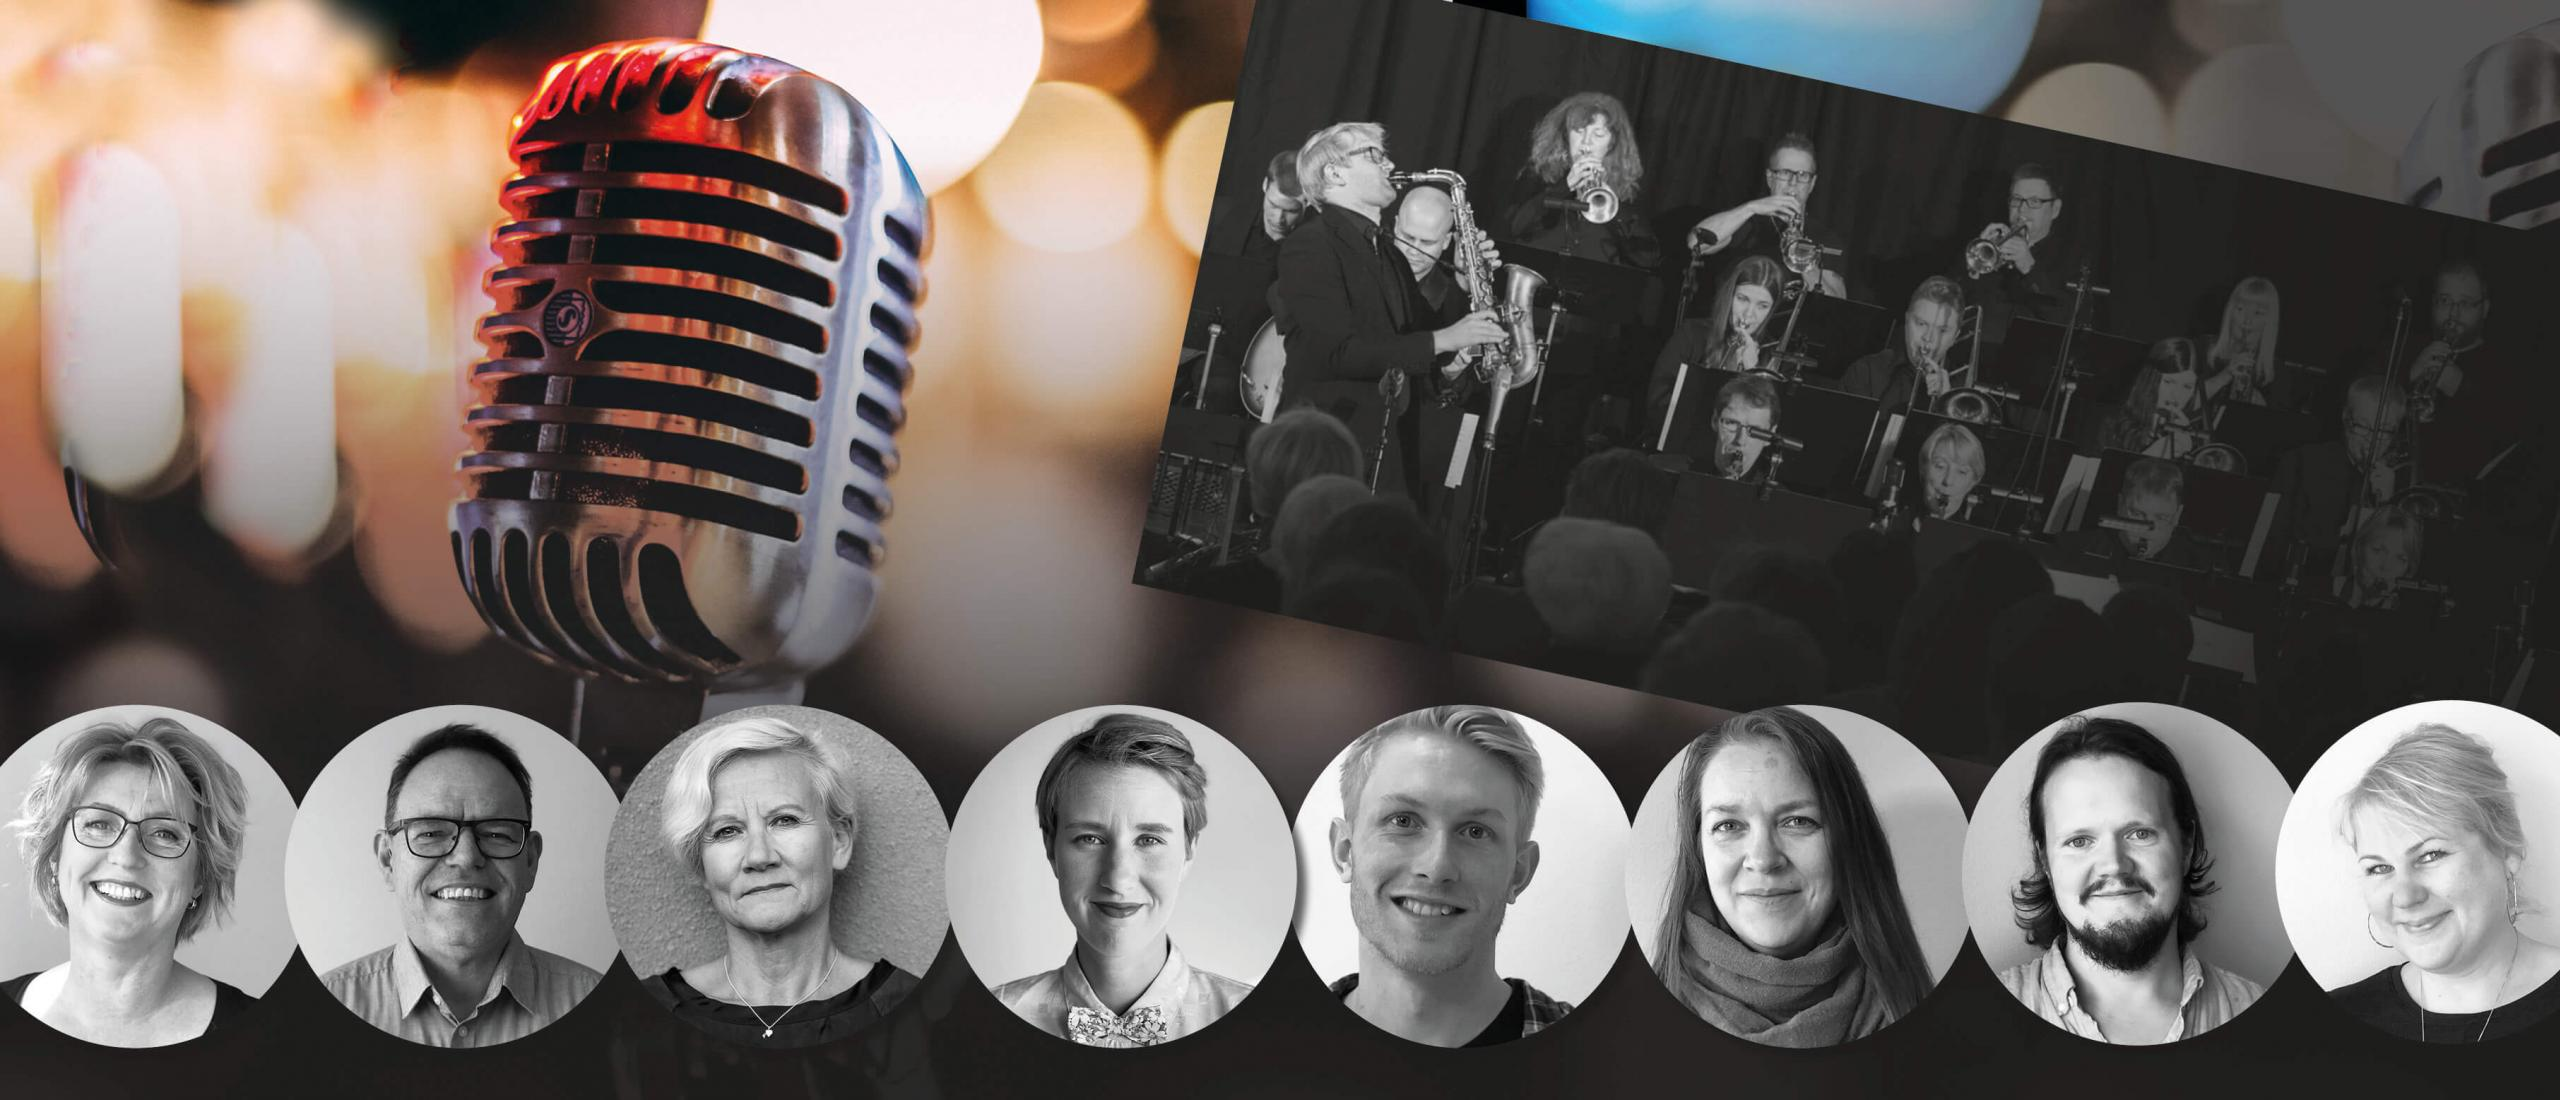 Nordic institute on Åland presents a Big Band evening at Nautical November 6th